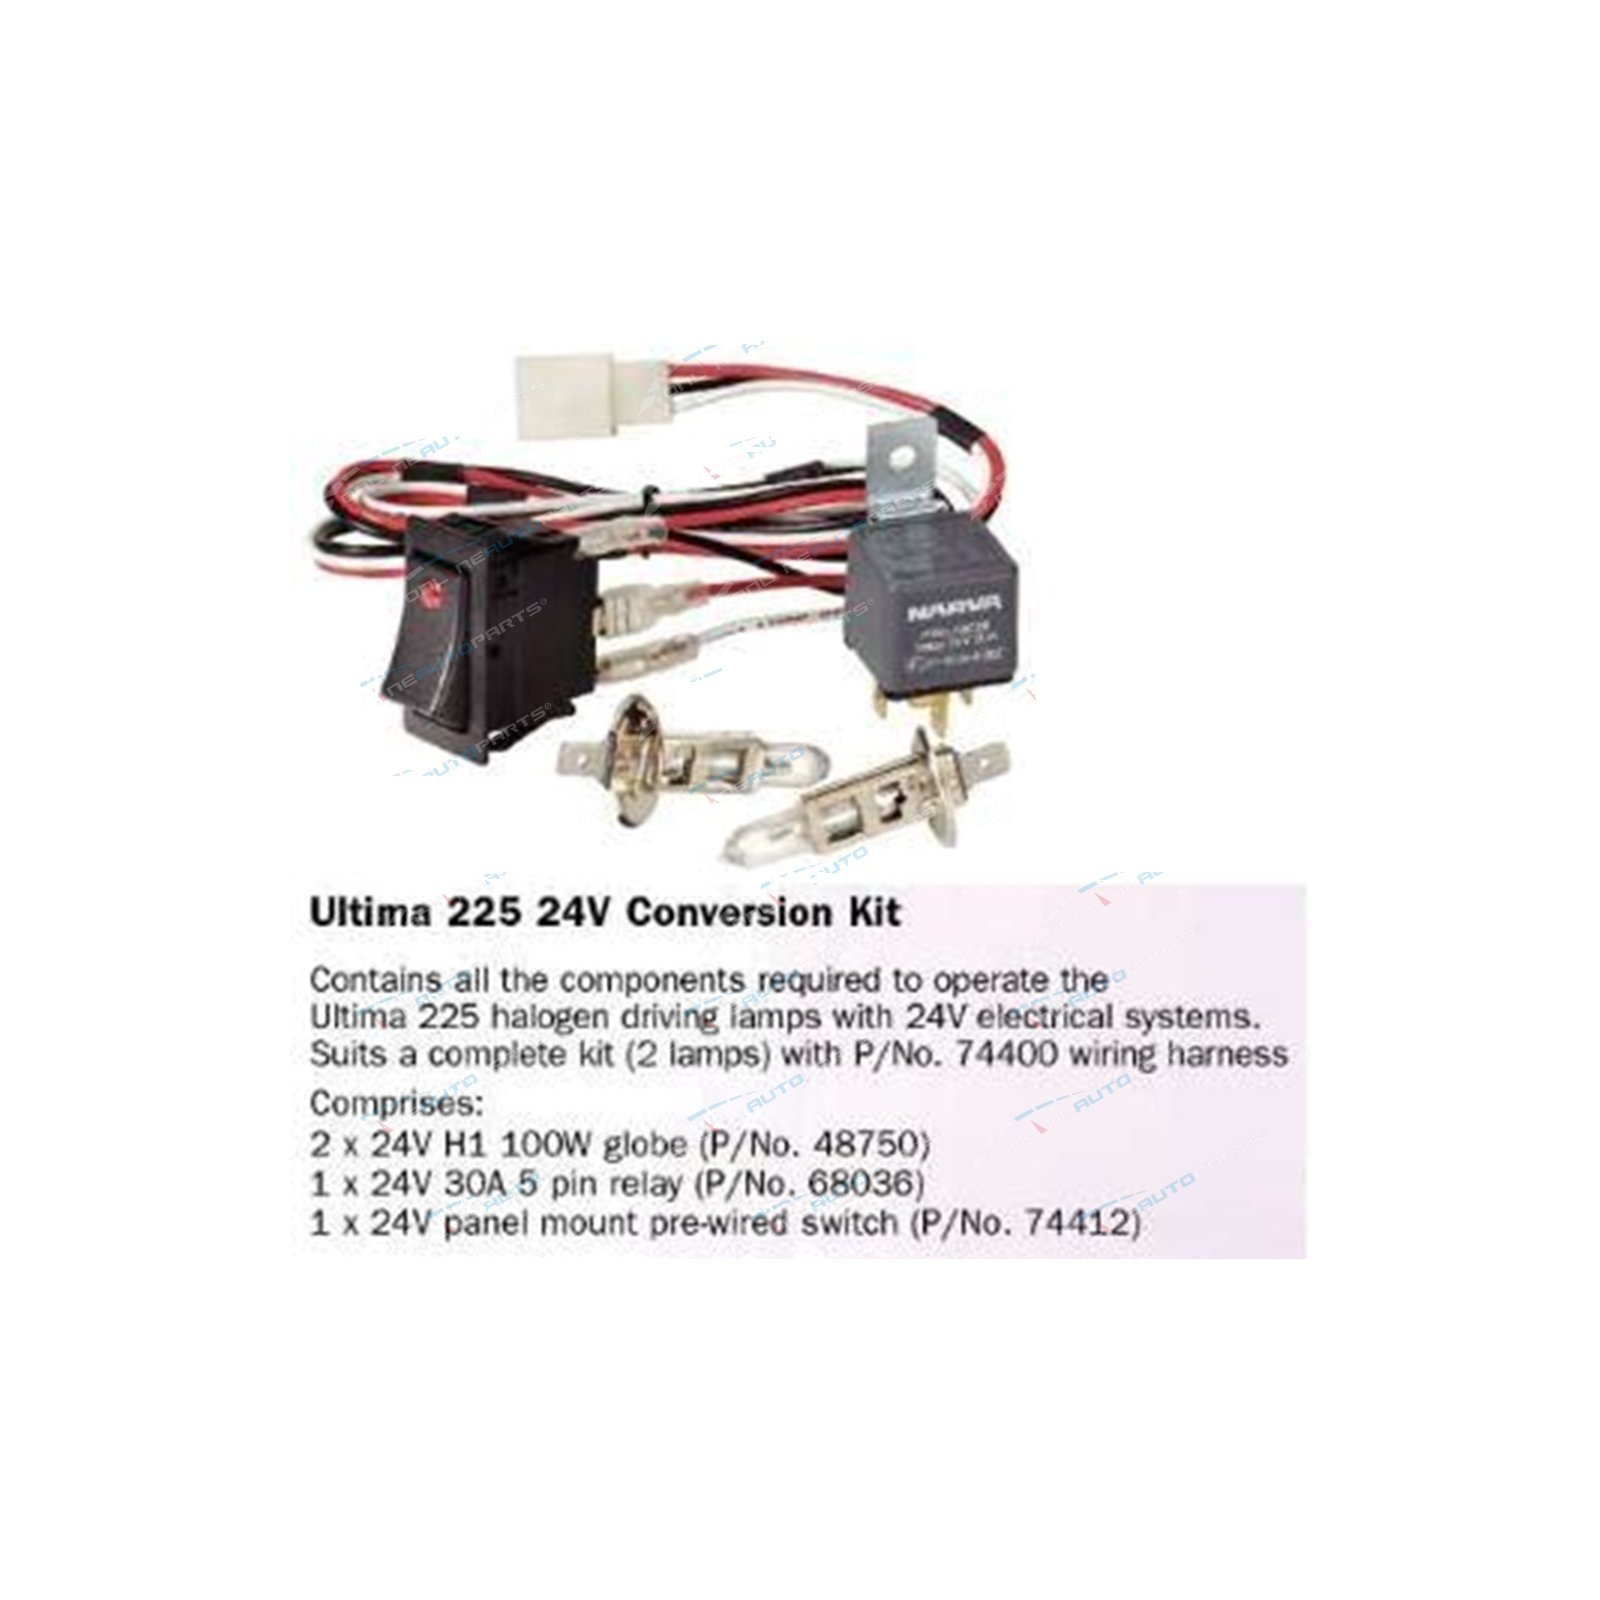 Narva Ultima 225 Conversion Kit Suits 24 Volt Cars Halogen Bulbs Wiring Harness Click To Enlarge